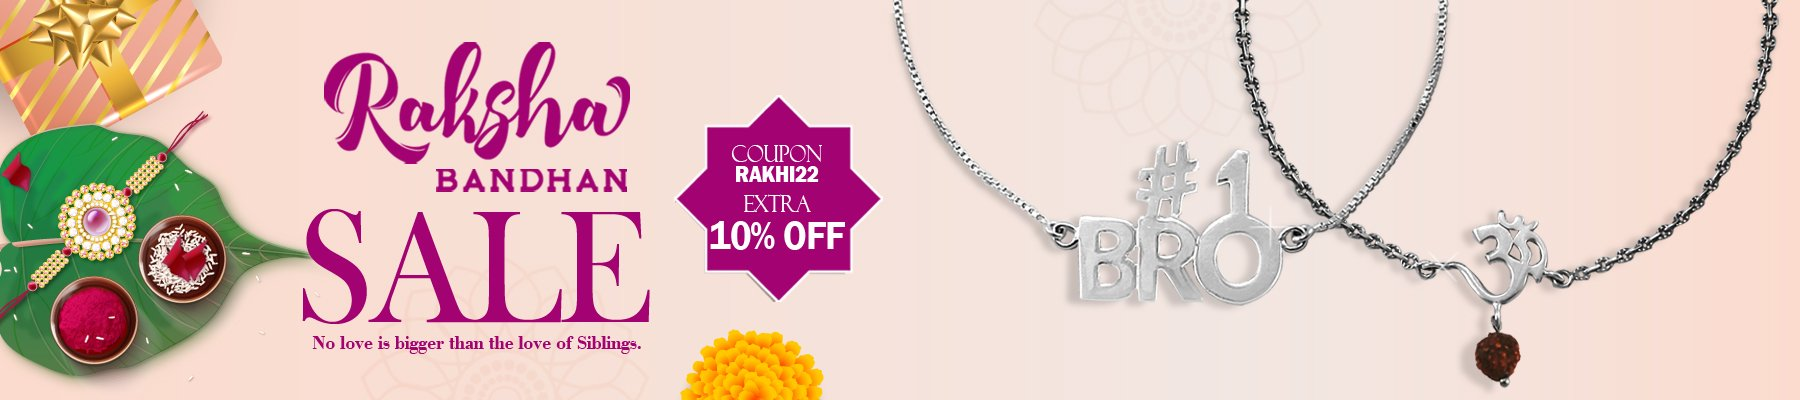 Makar Sankranti Offer